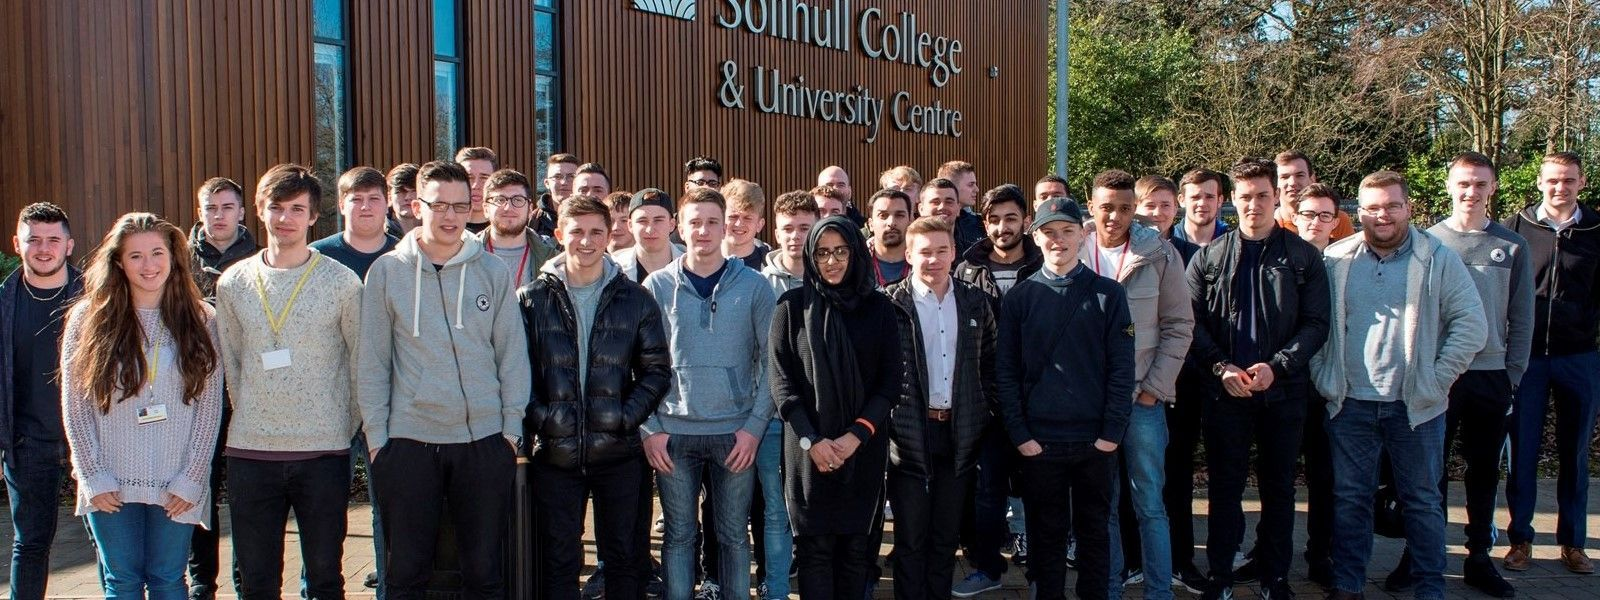 Solihull College and University Centre Apprentices